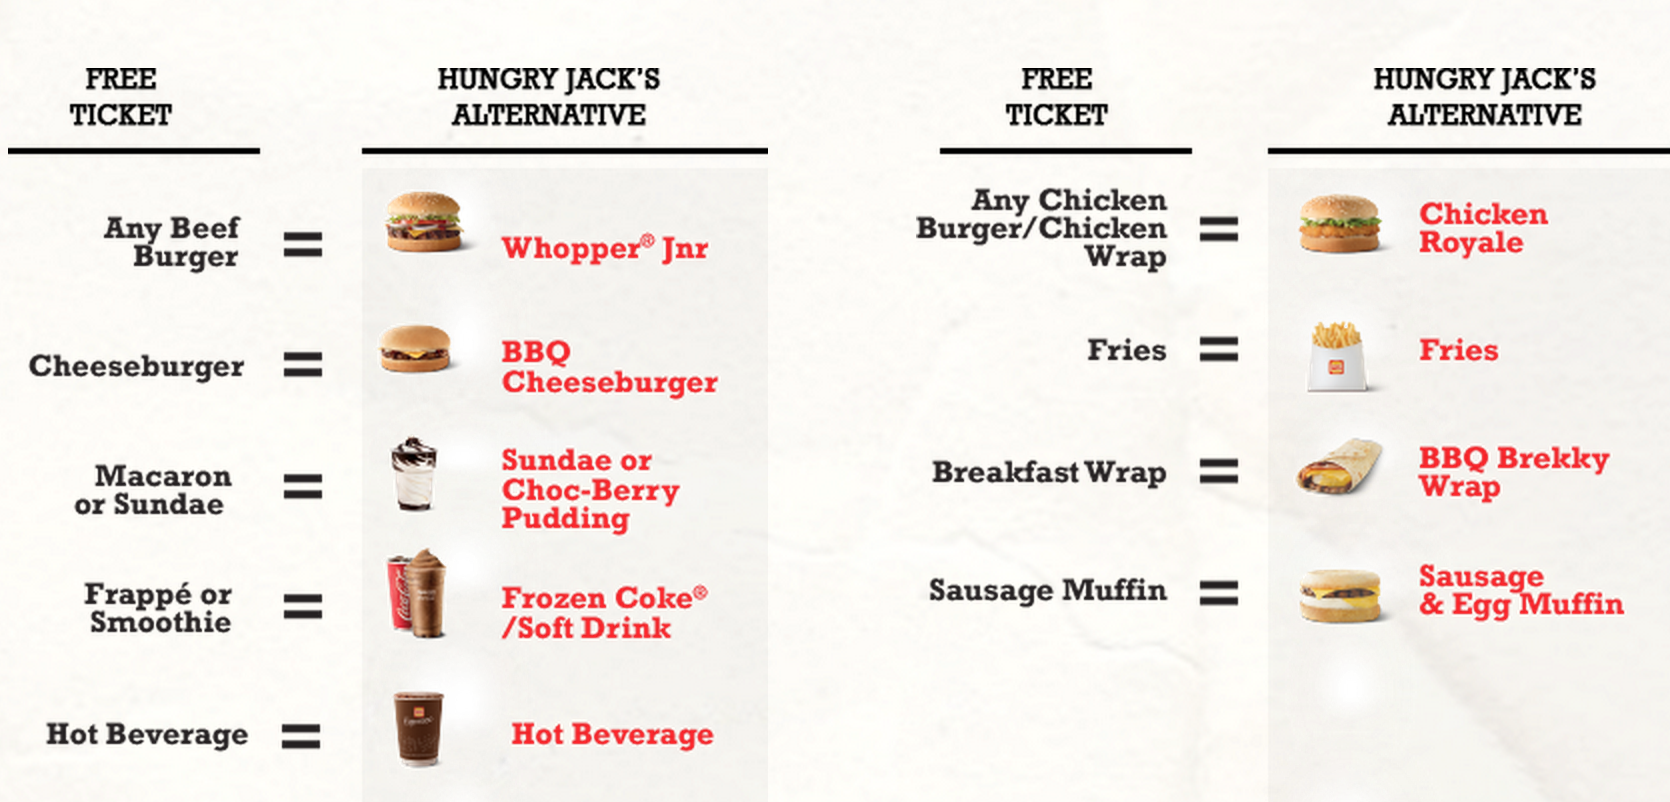 The McDonald's to Hungry Jack conversion chart.